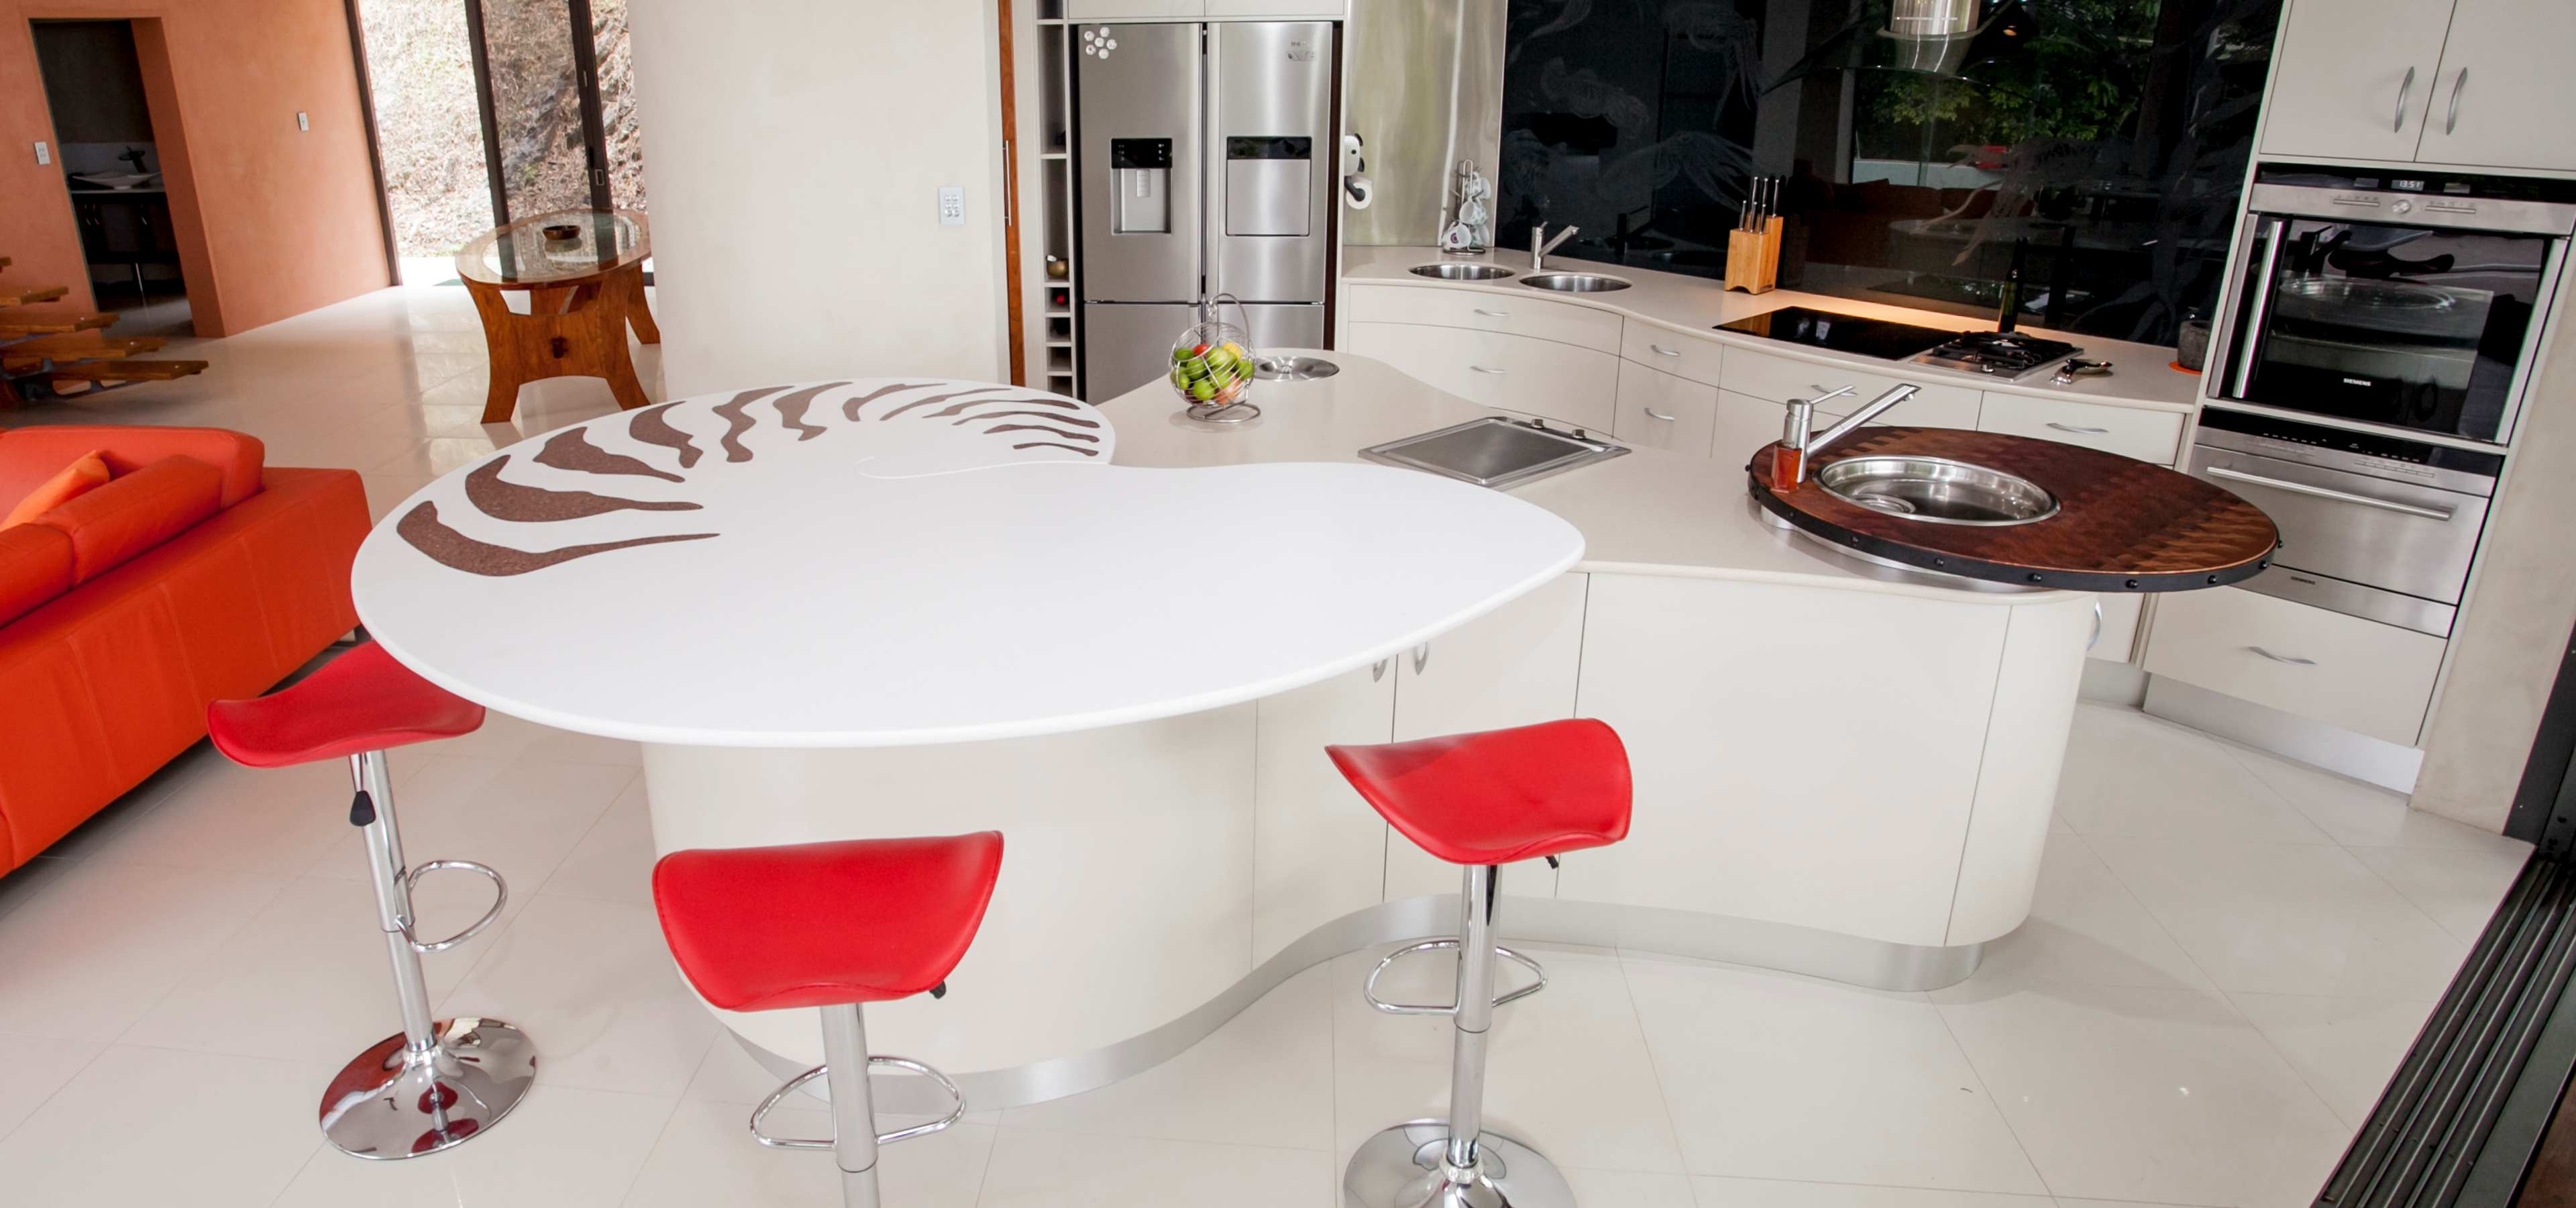 cairns kitchen designs